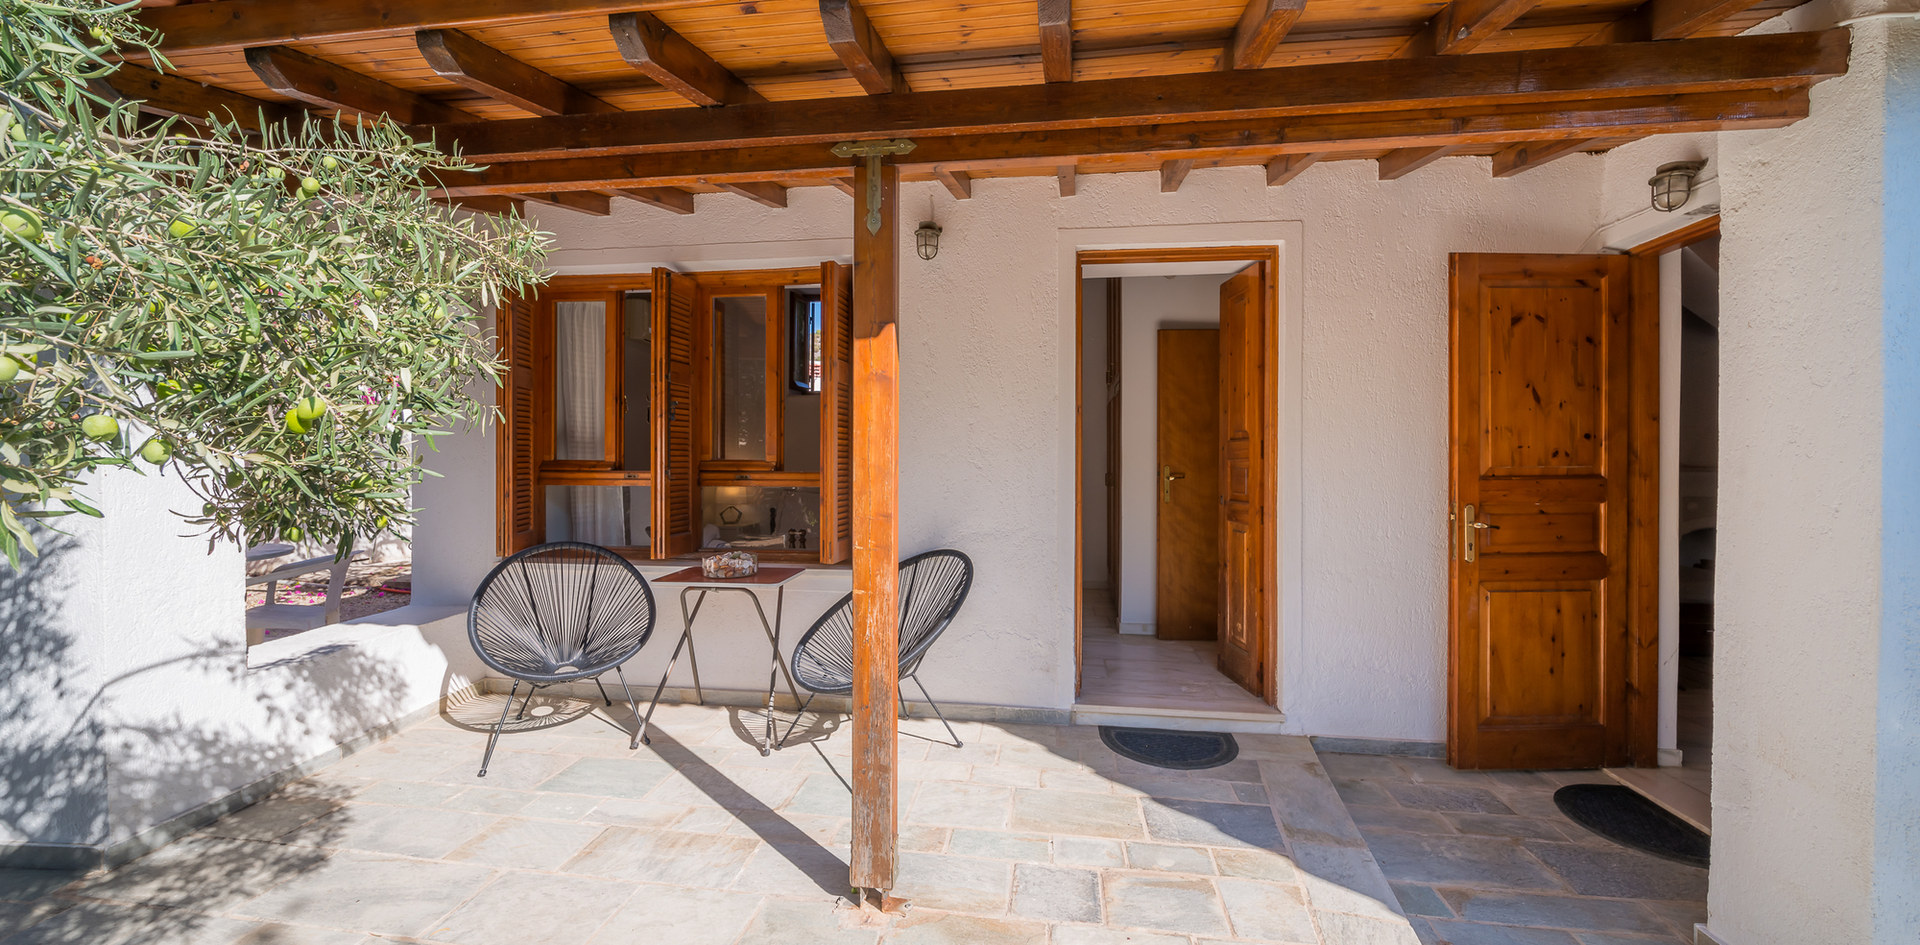 Aegina holiday rental